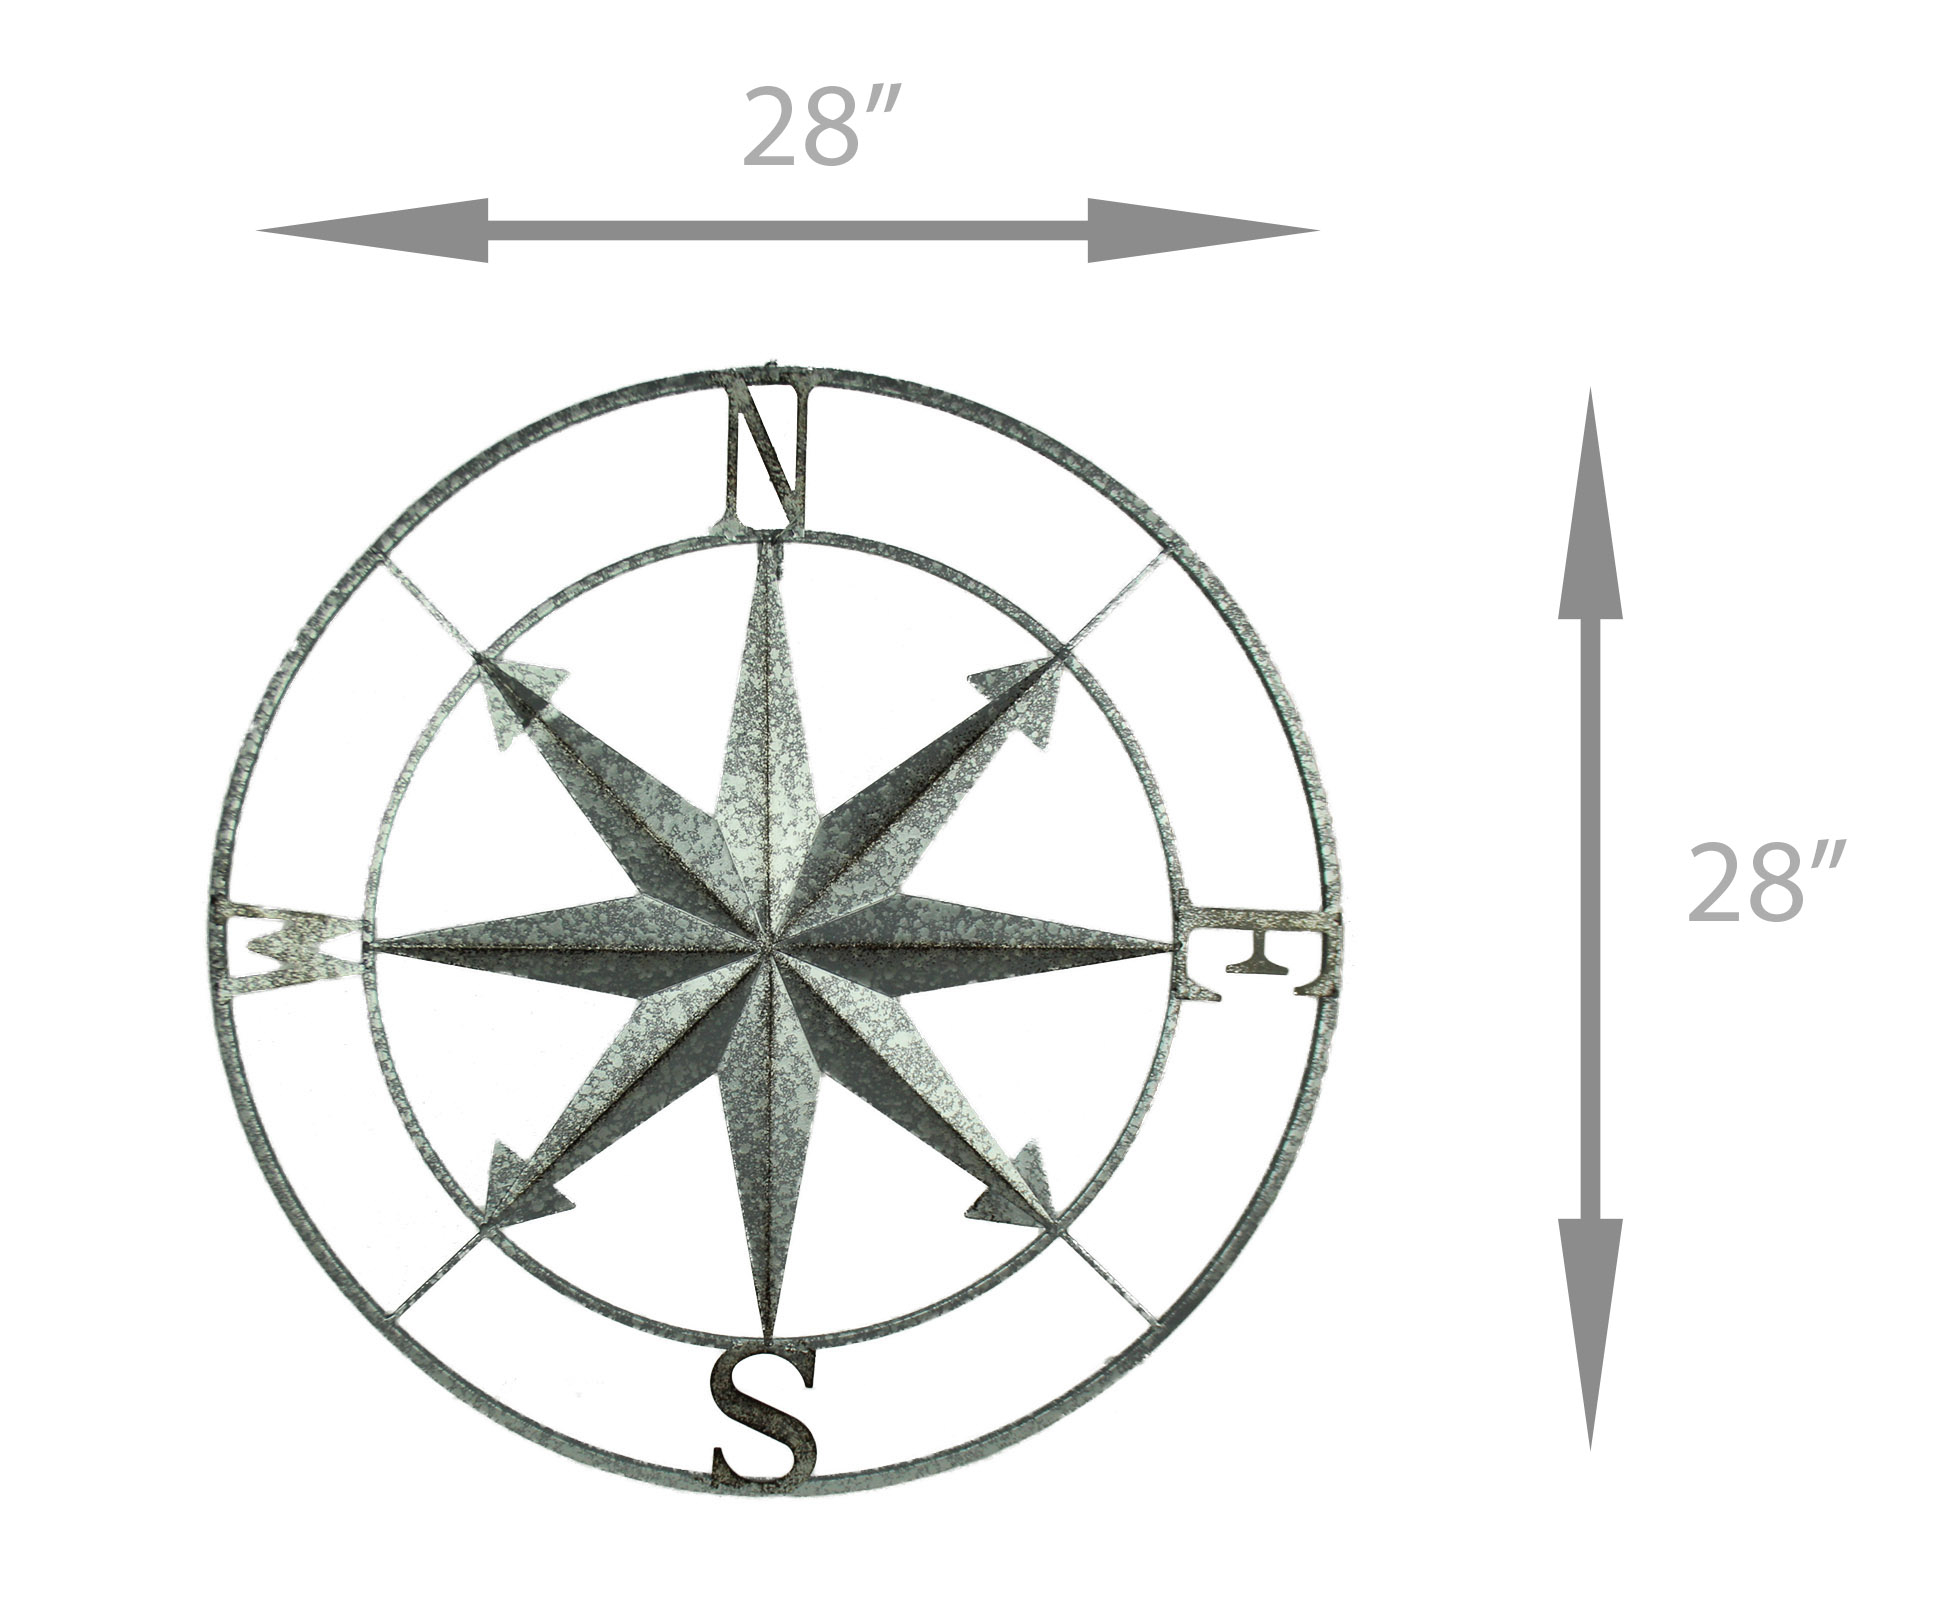 Distressed Metal Indoor/outdoor Compass Rose Wall Hanging 28 Inch inside Outdoor Metal Wall Compass (Image 17 of 30)